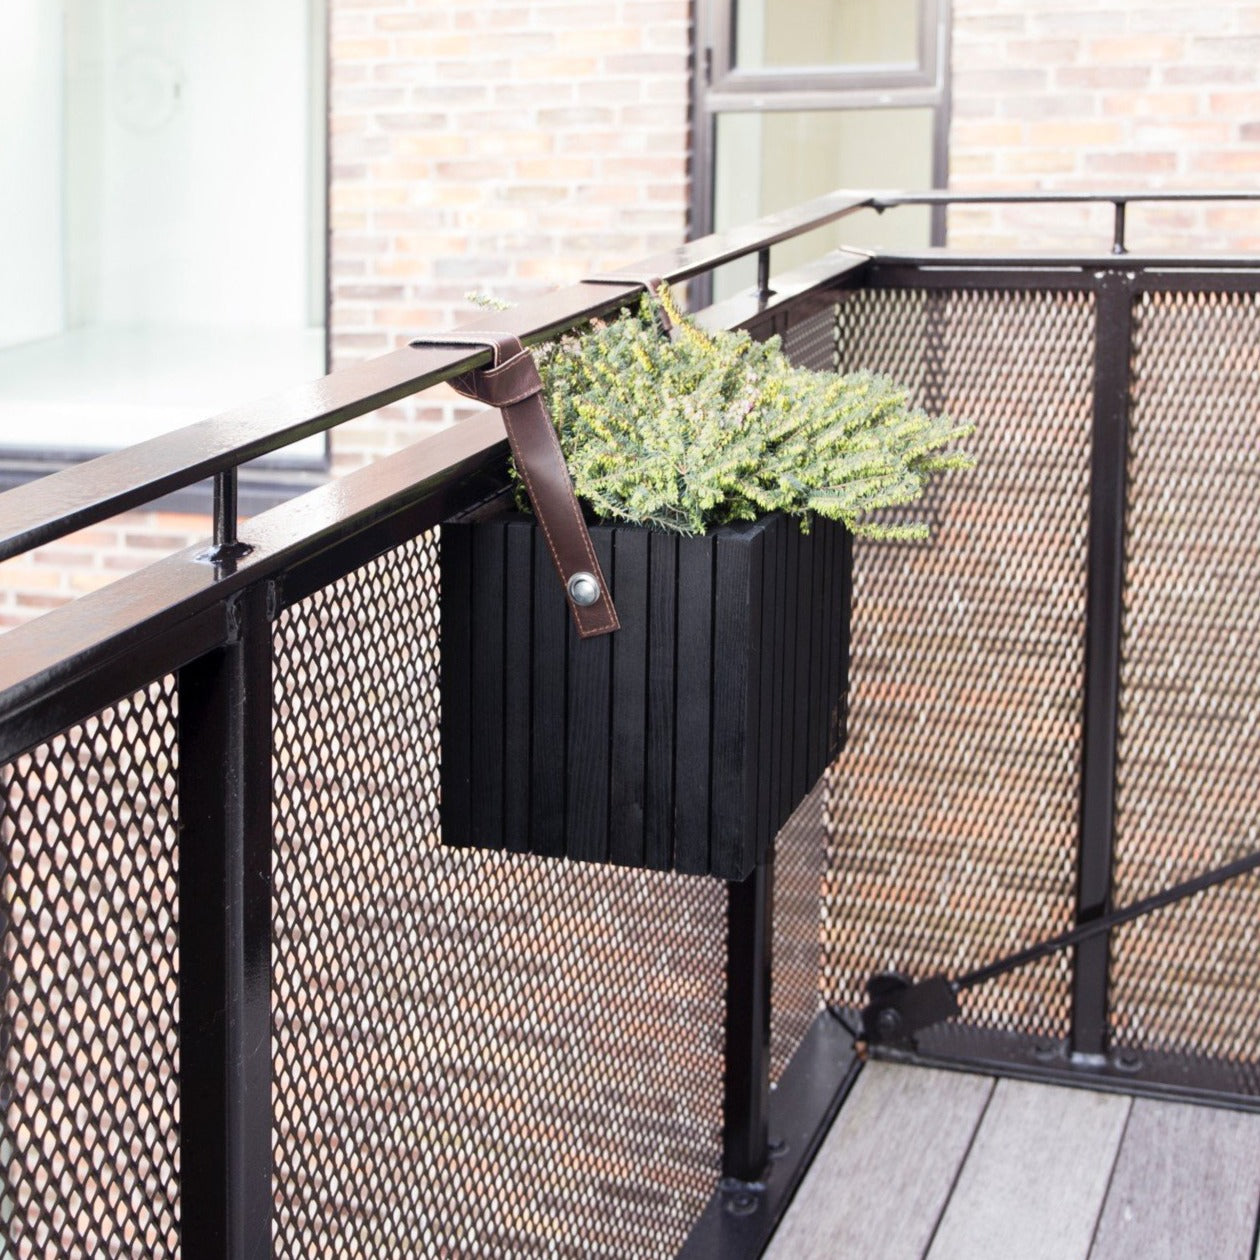 "SQUARELY's design planter ""GrowOn HoldOn Black Ash"" on a balcony . GrowOn HoldOn is SQUARELY's smaller, wooden, sustainable design planter with self-watering system."